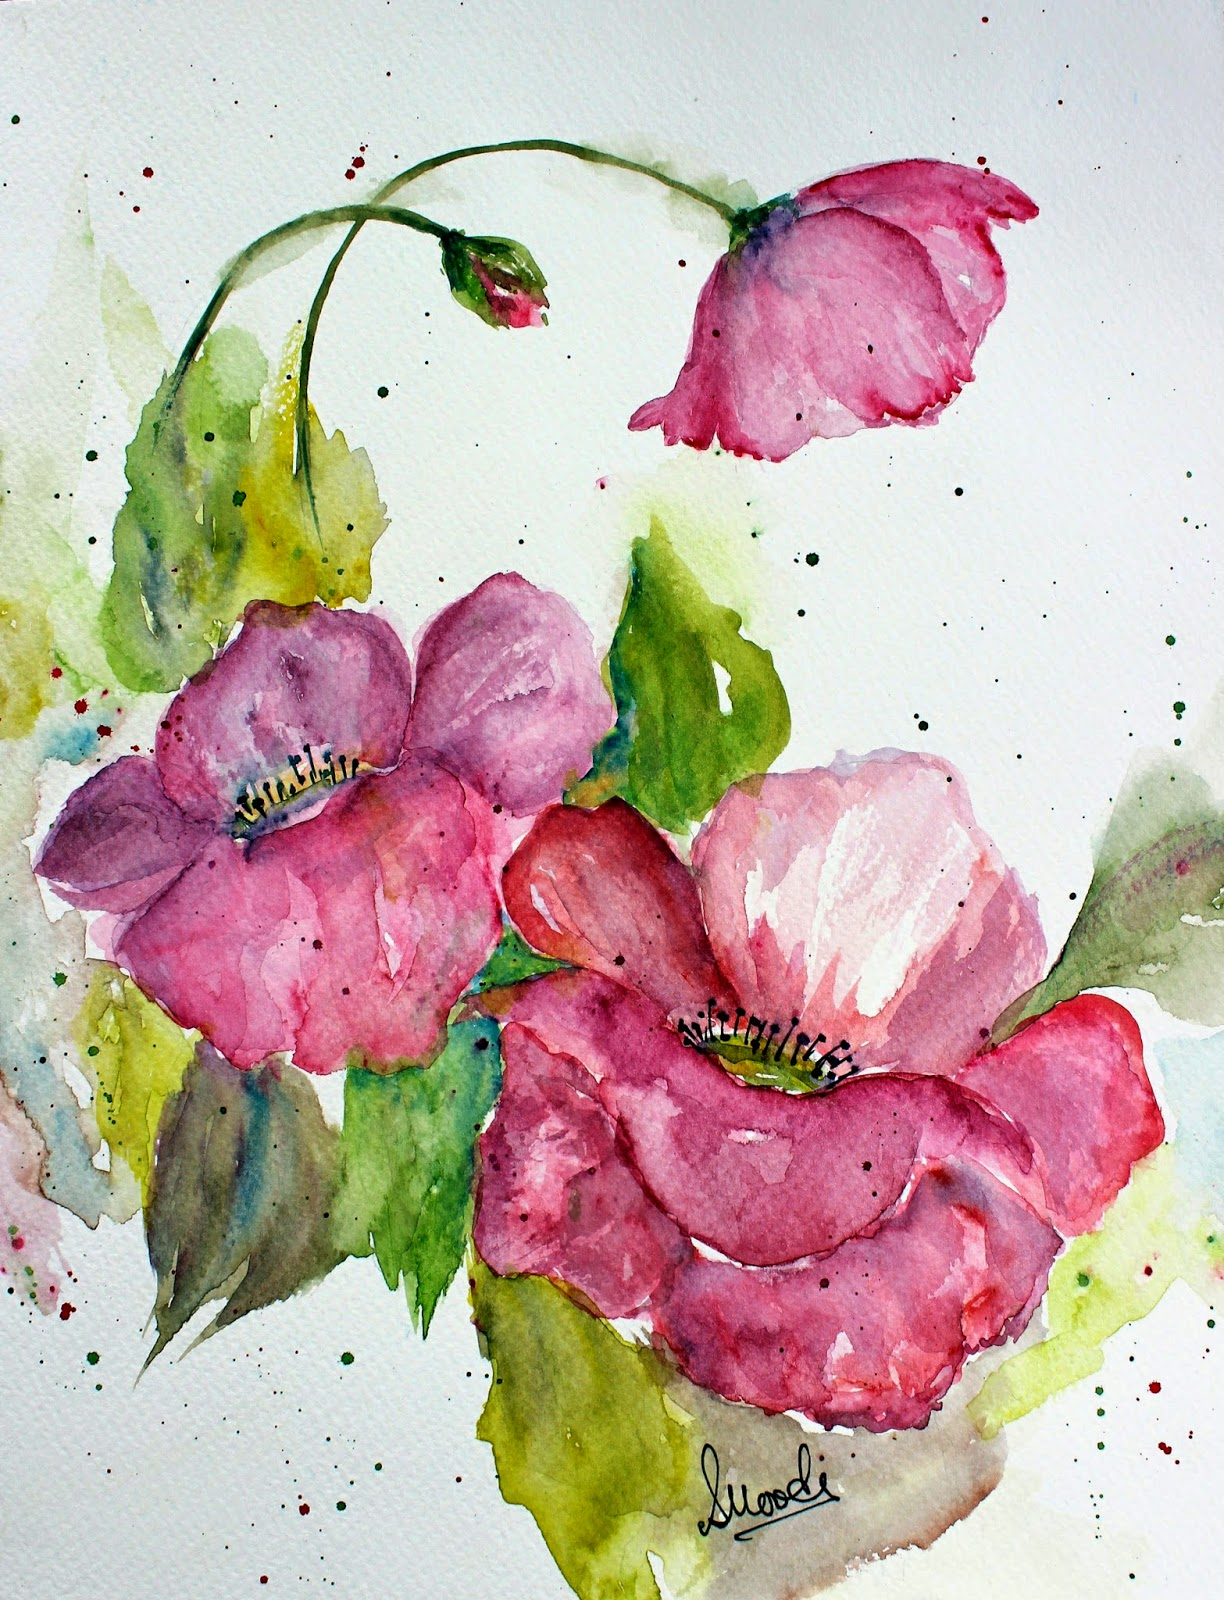 blooming, blooms, painting, print, poster, flowers, bold, beautiful, watercolors, pink, large, petals, paint